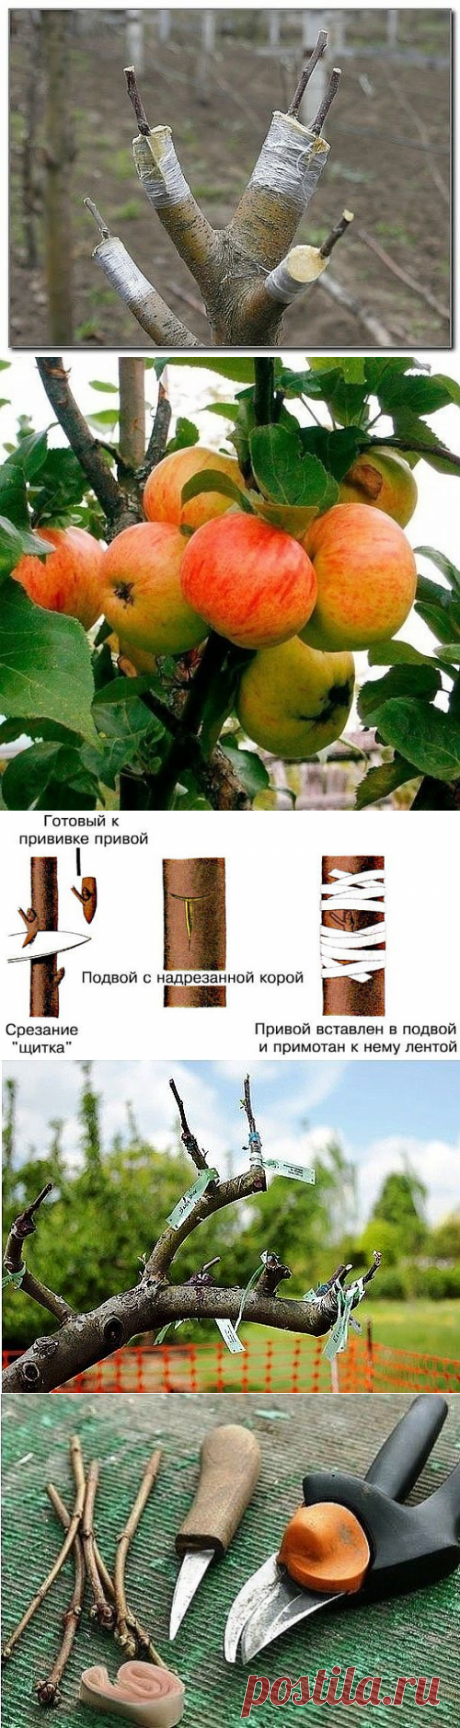 AS it is CORRECT to IMPART SEVERAL GRADES (councils of the agronomist) ON ONE APPLE-TREE